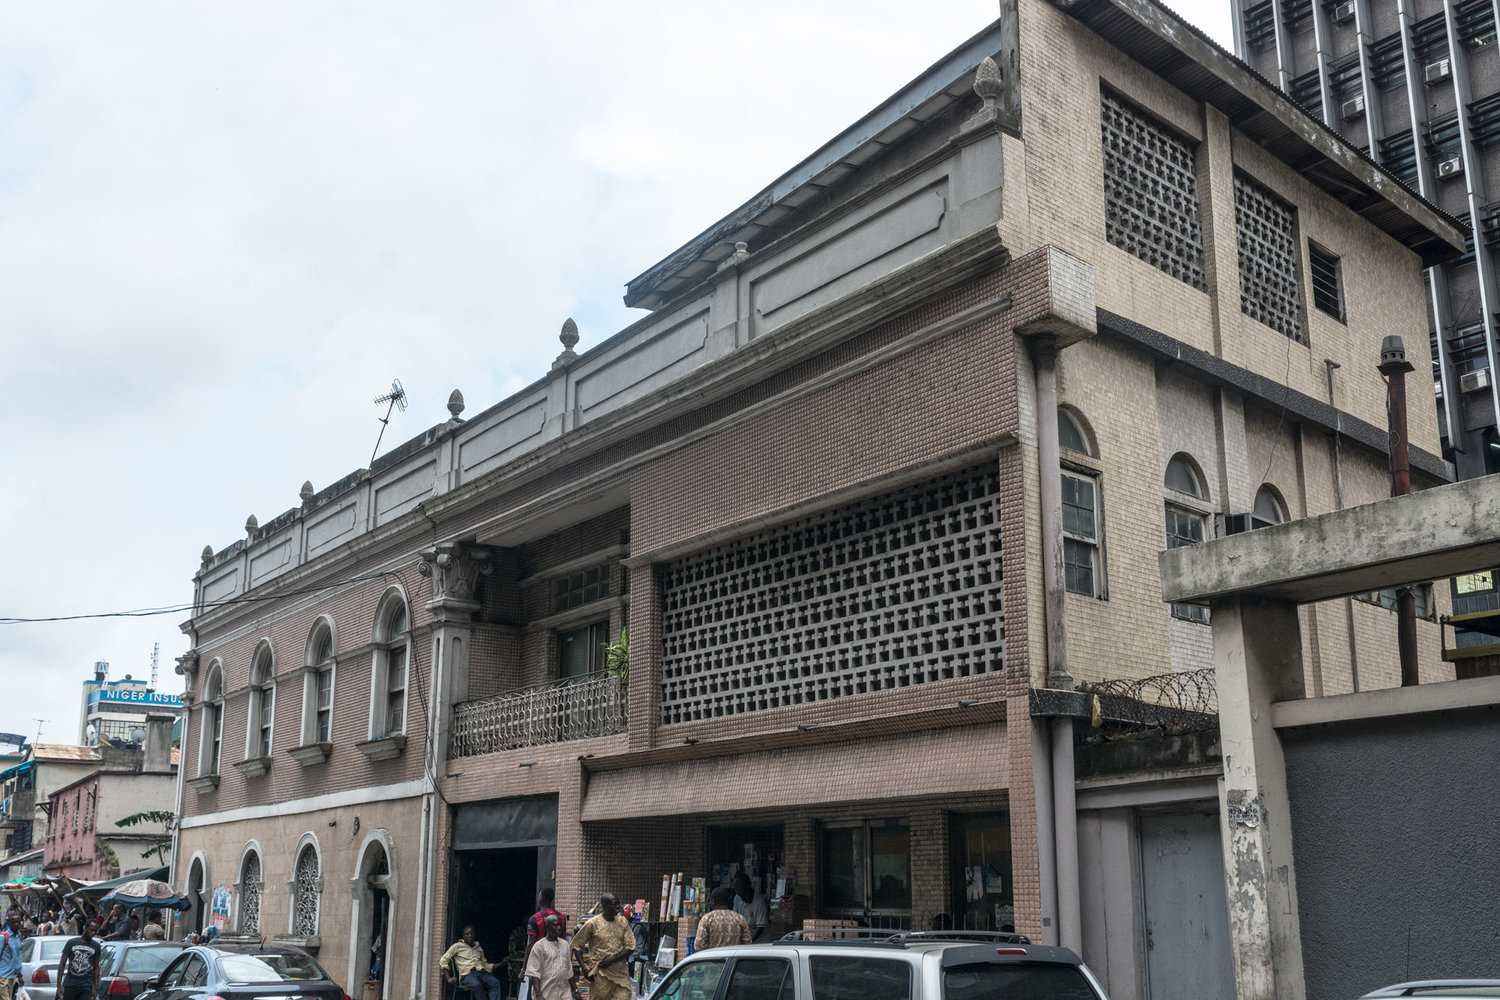 Candido da Rocha's house, Popo Aguda, Lagos. He was born to a Yorùbá father in Brazil. The house got the name 'Ilé Olómi' as it was one of the first that was connected to public water supply.©Aderemi Adegbite